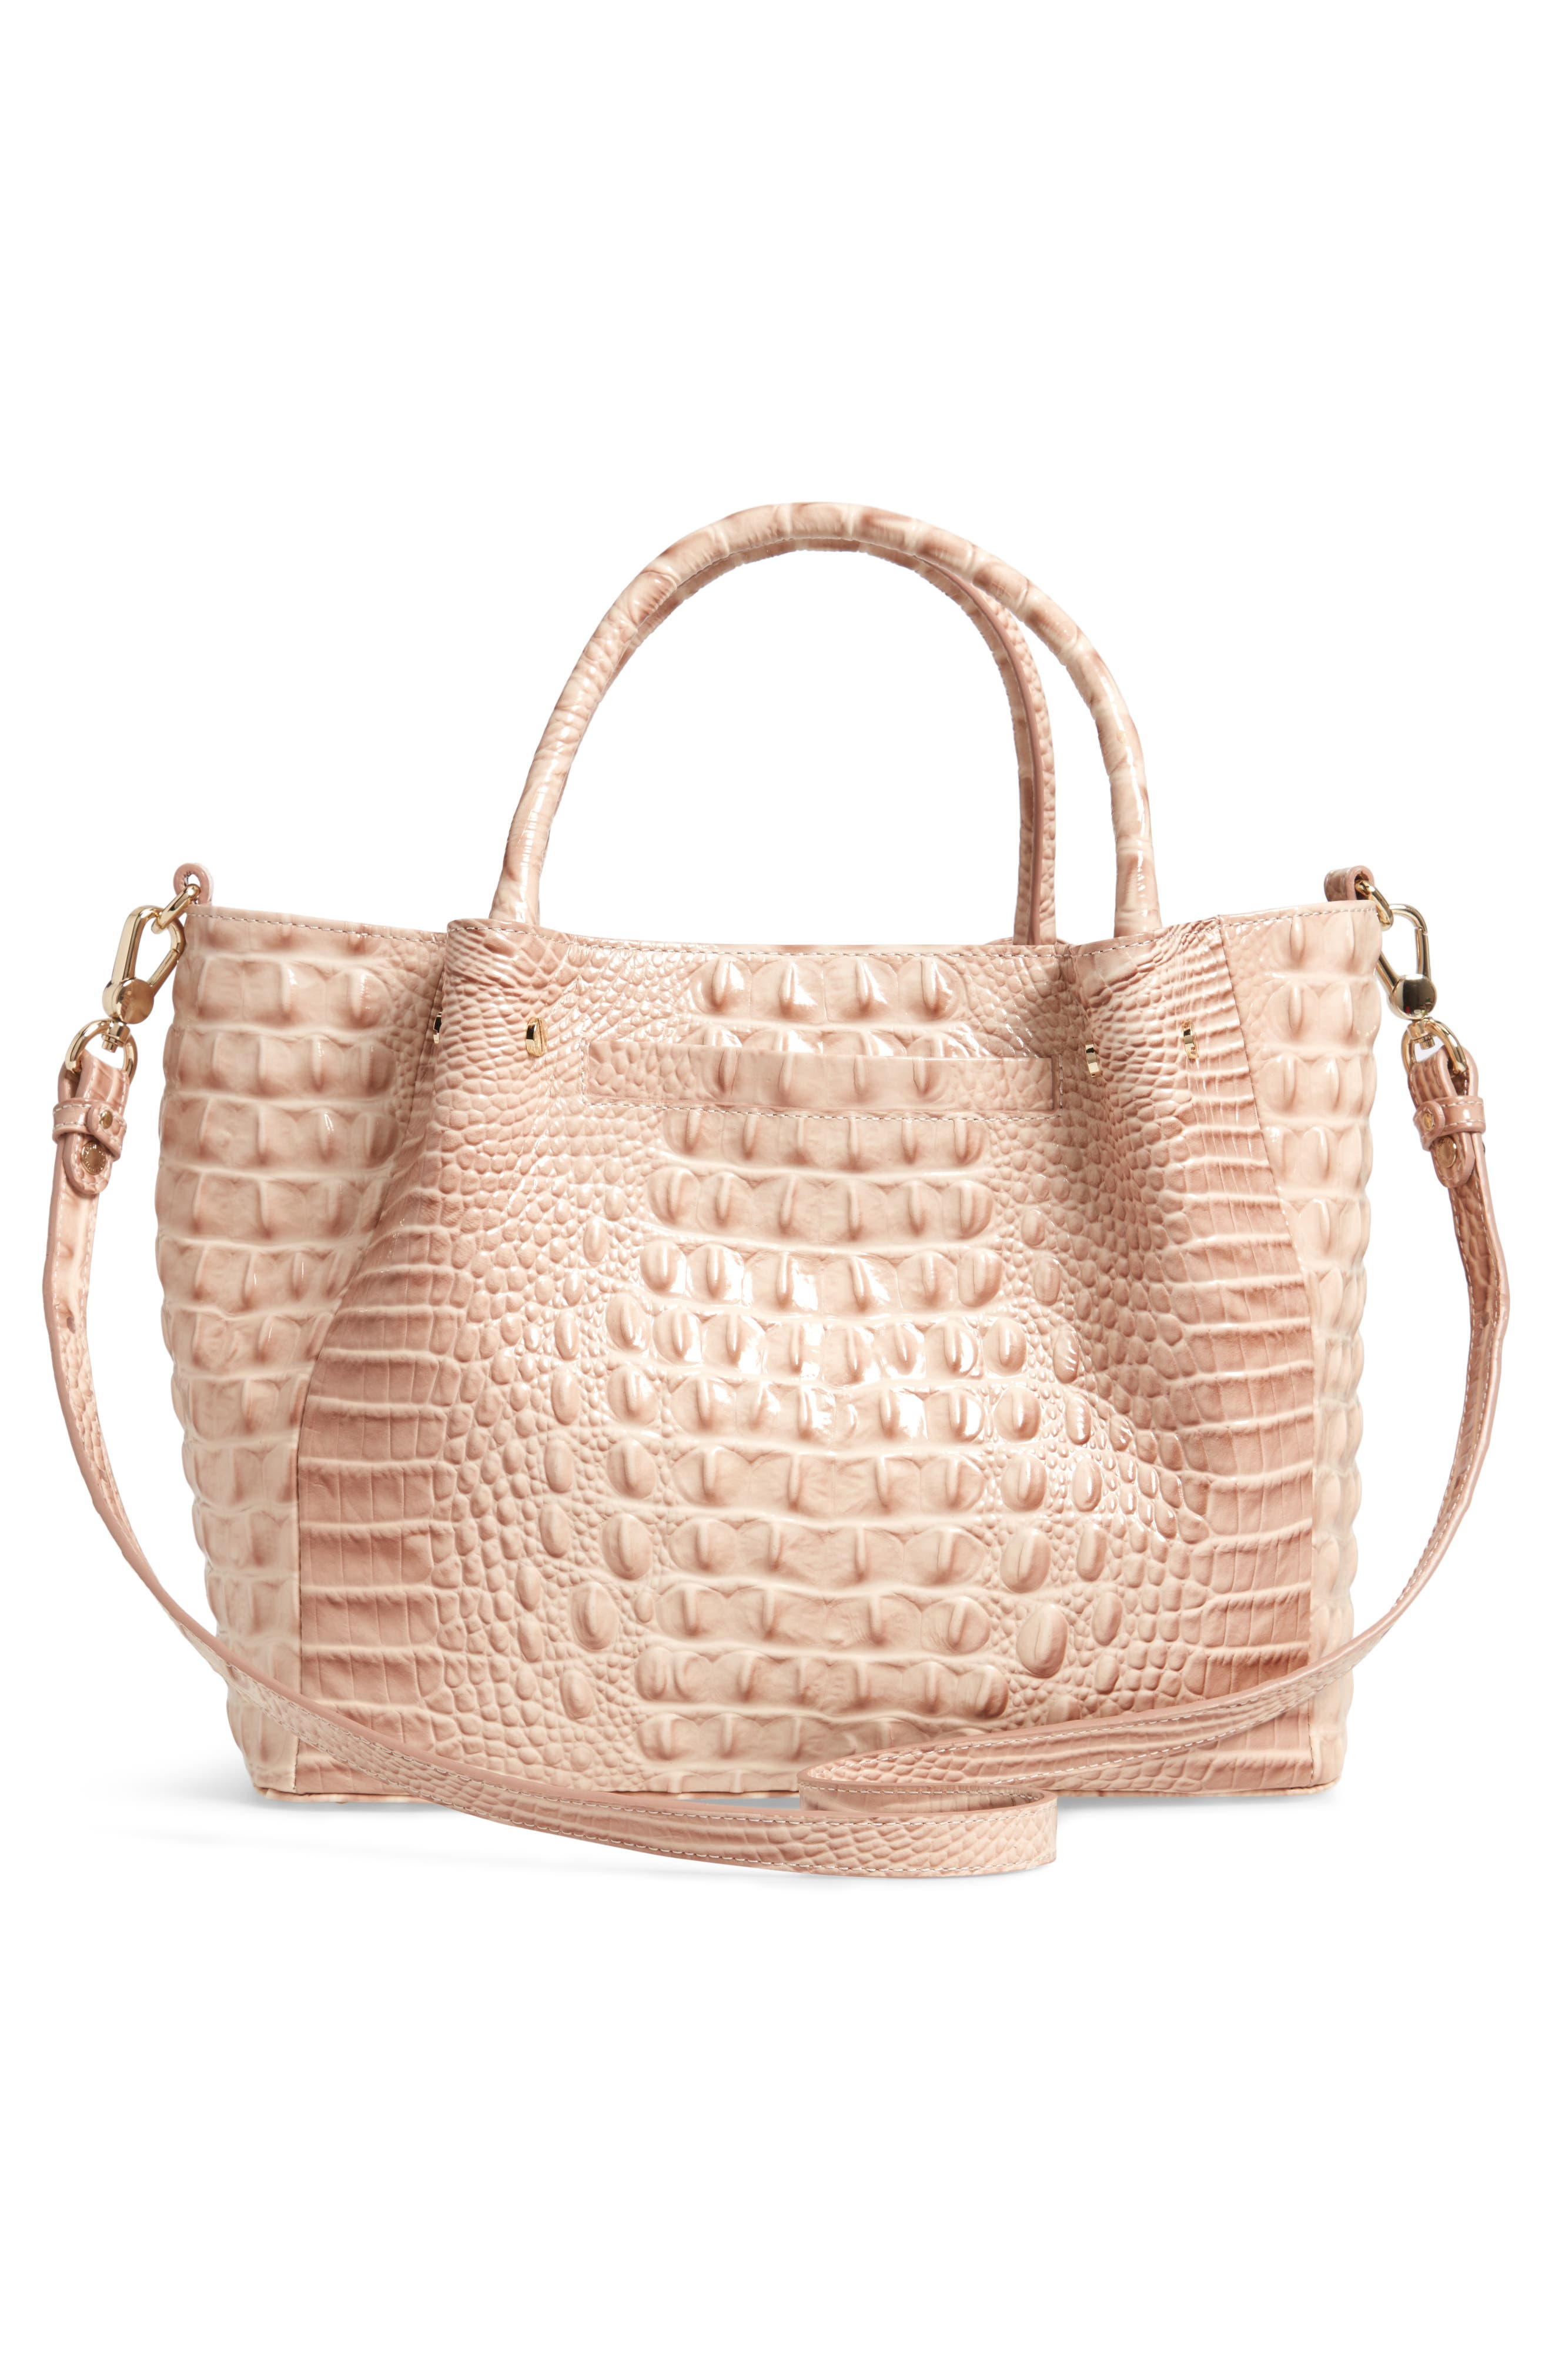 BRAHMIN, Small Mallory Croc Embossed Leather Satchel, Alternate thumbnail 4, color, 650